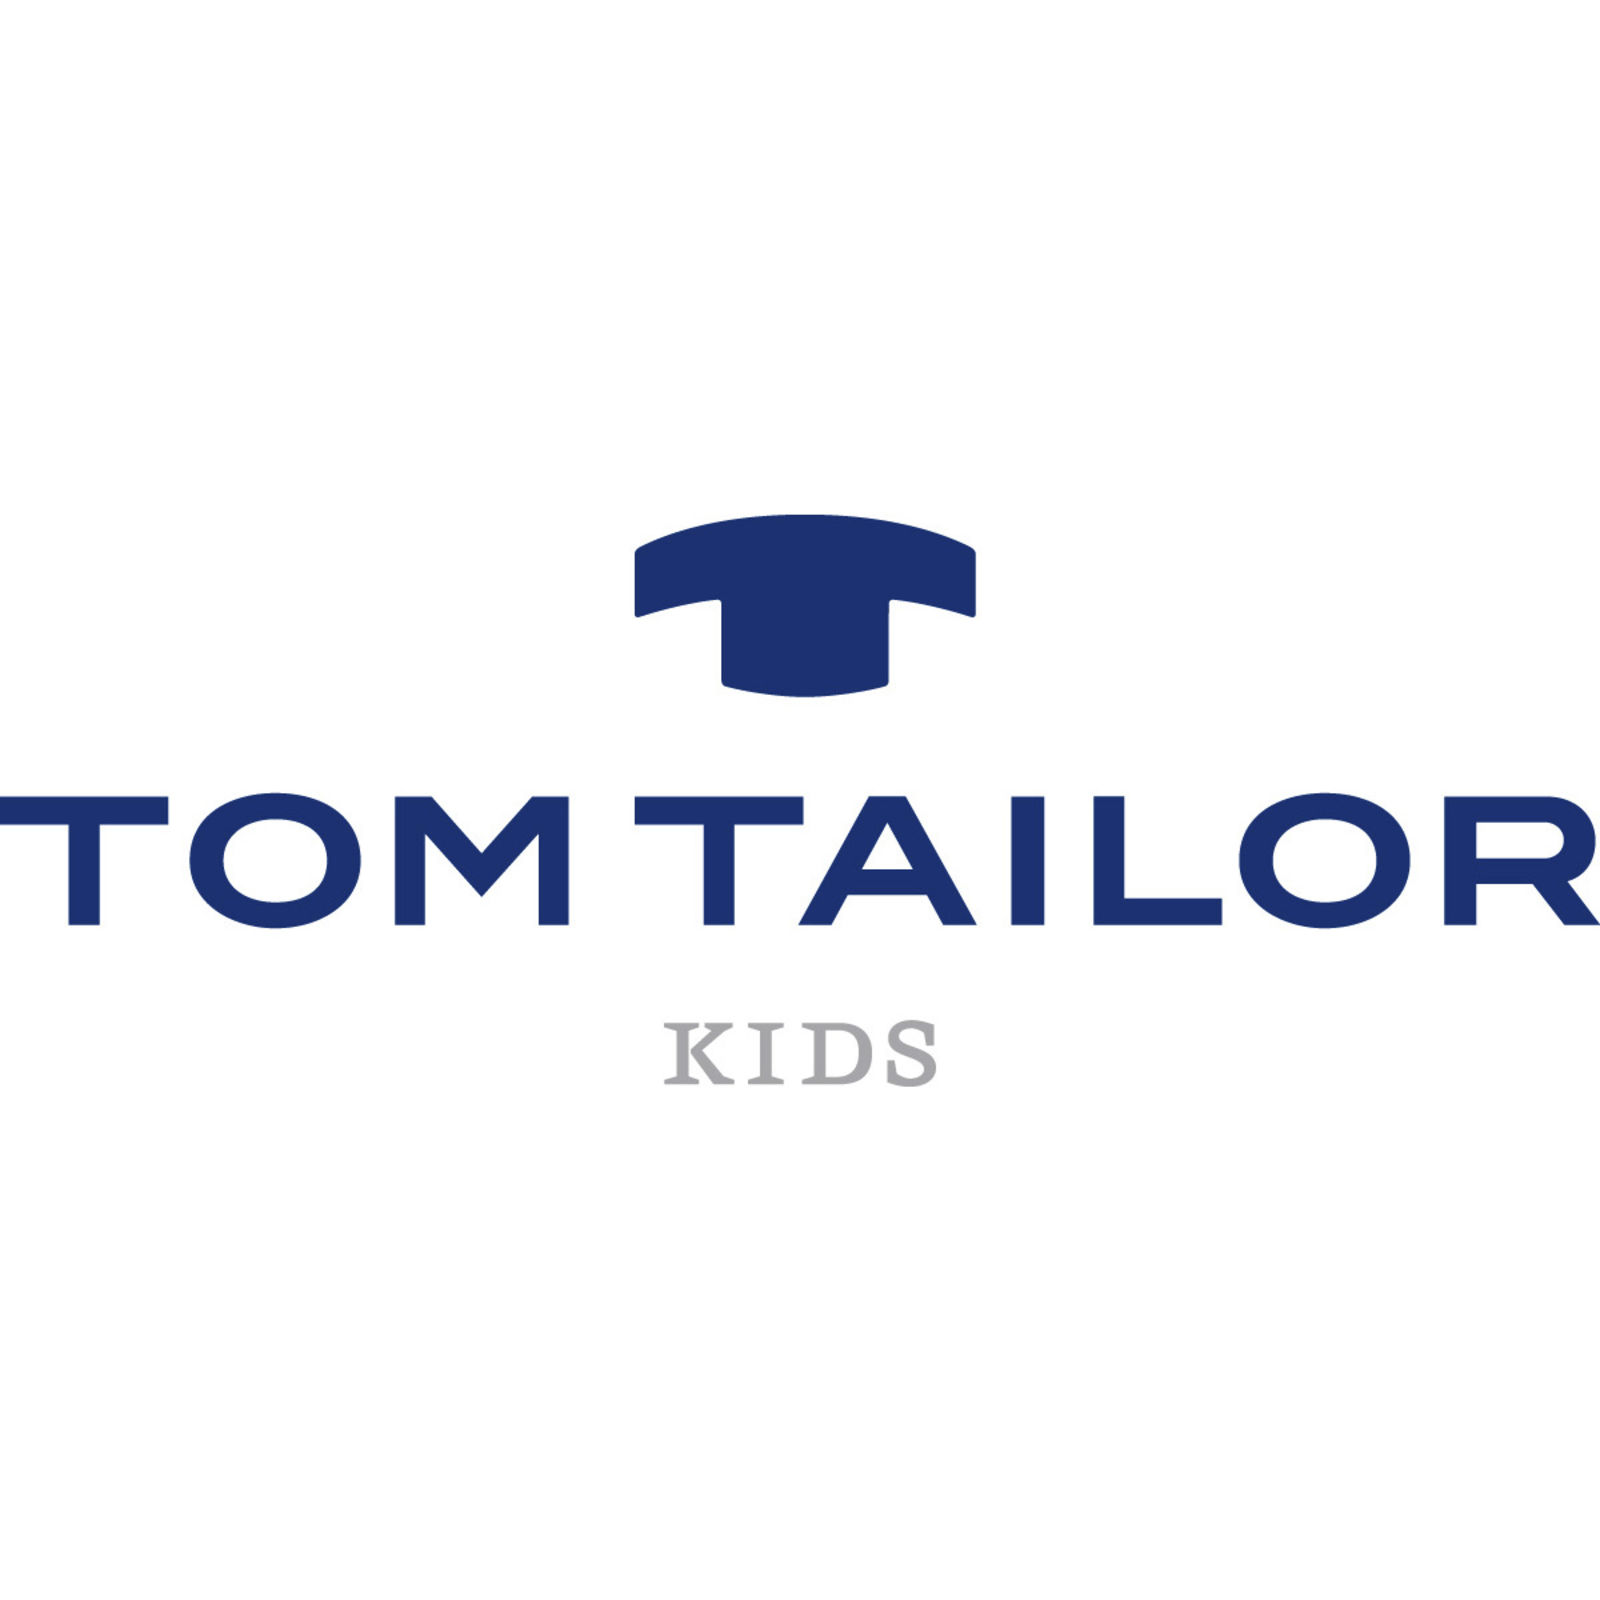 TOM TAILOR Kids